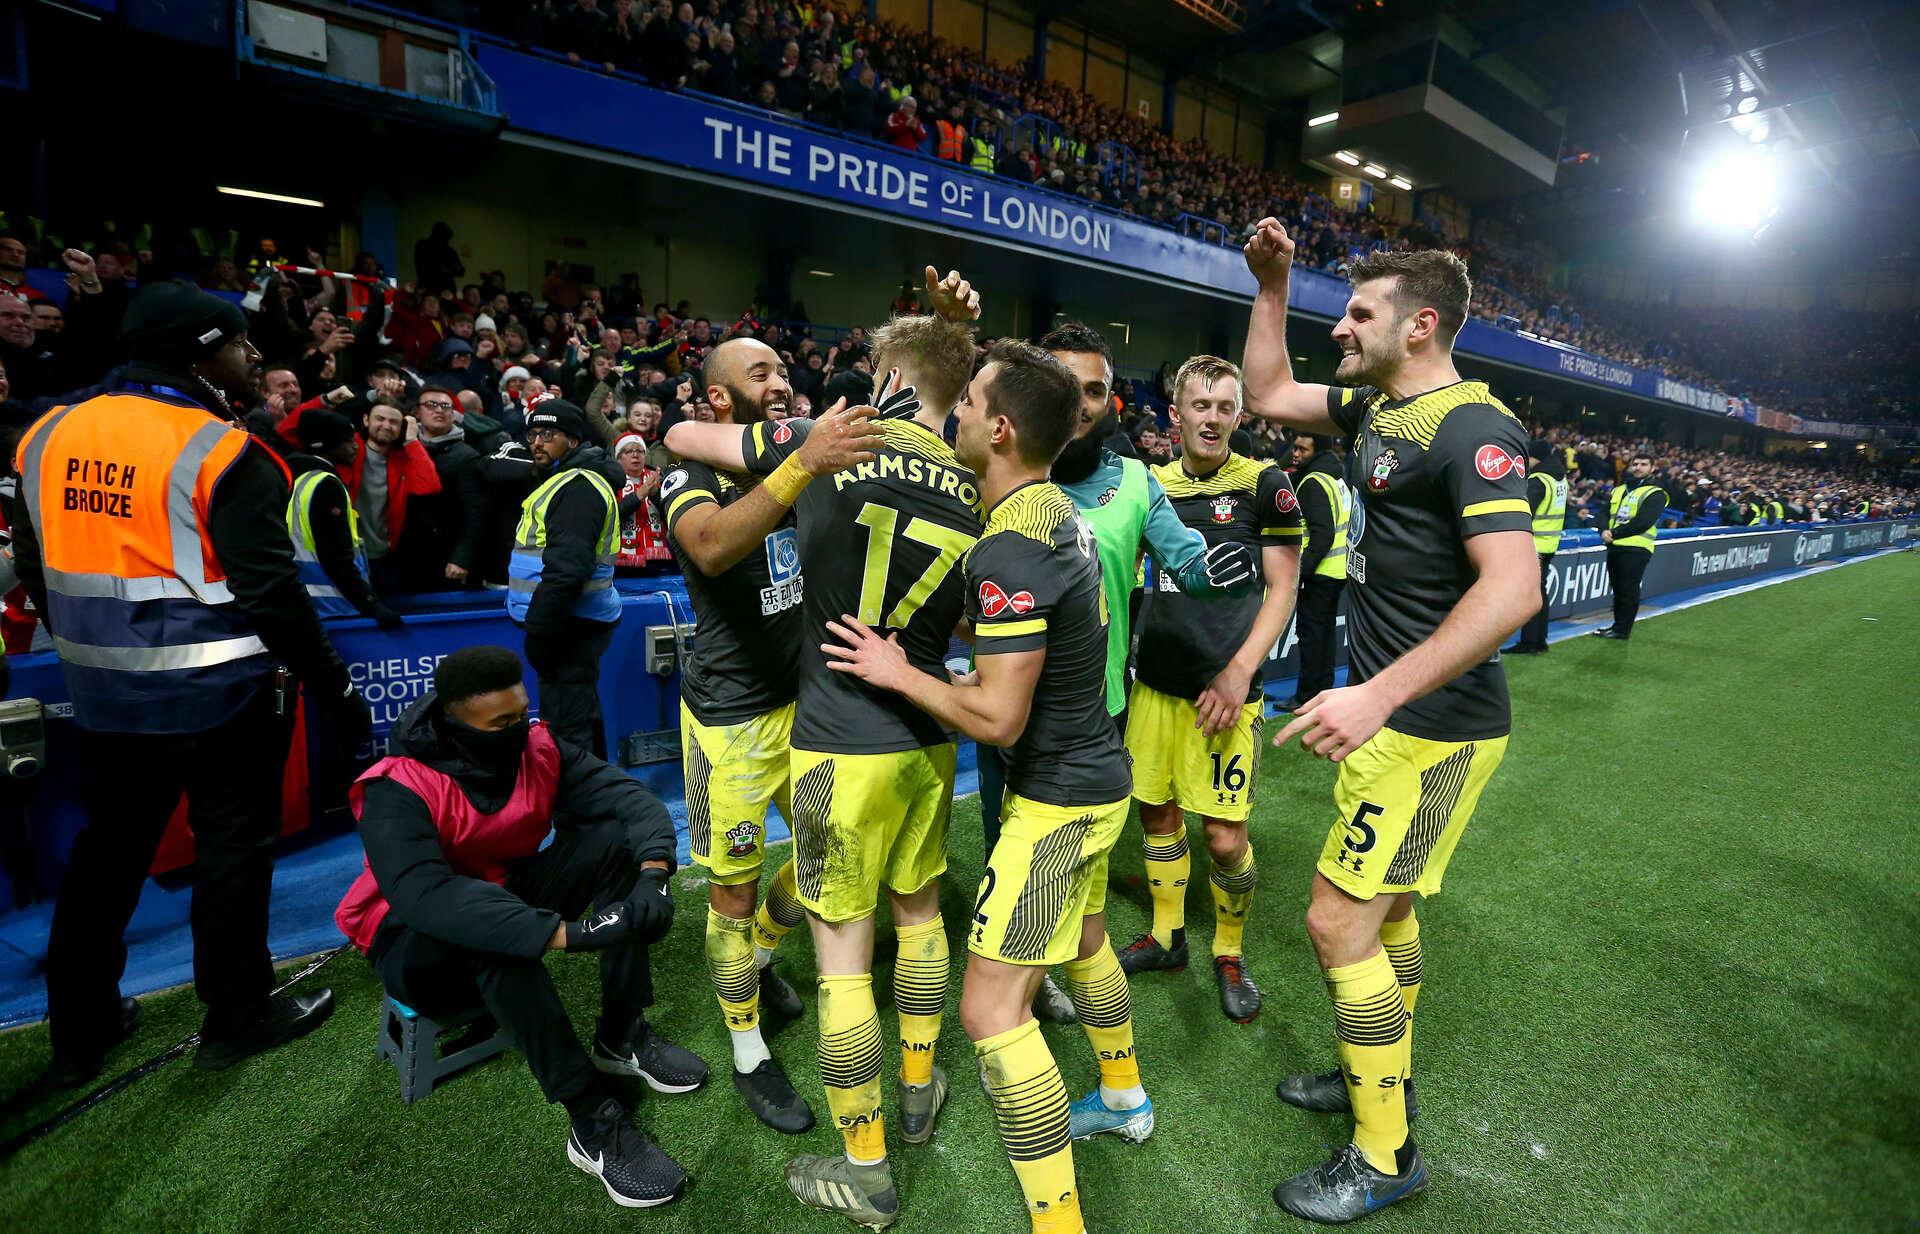 LONDON, ENGLAND - DECEMBER 26: Nathan Redmond(L) of Southampton celebrates with his team mates after scoring his teams second goal during the Premier League match between Chelsea FC and Southampton FC at Stamford Bridge on December 26, 2019 in London, United Kingdom. (Photo by Matt Watson/Getty Images)